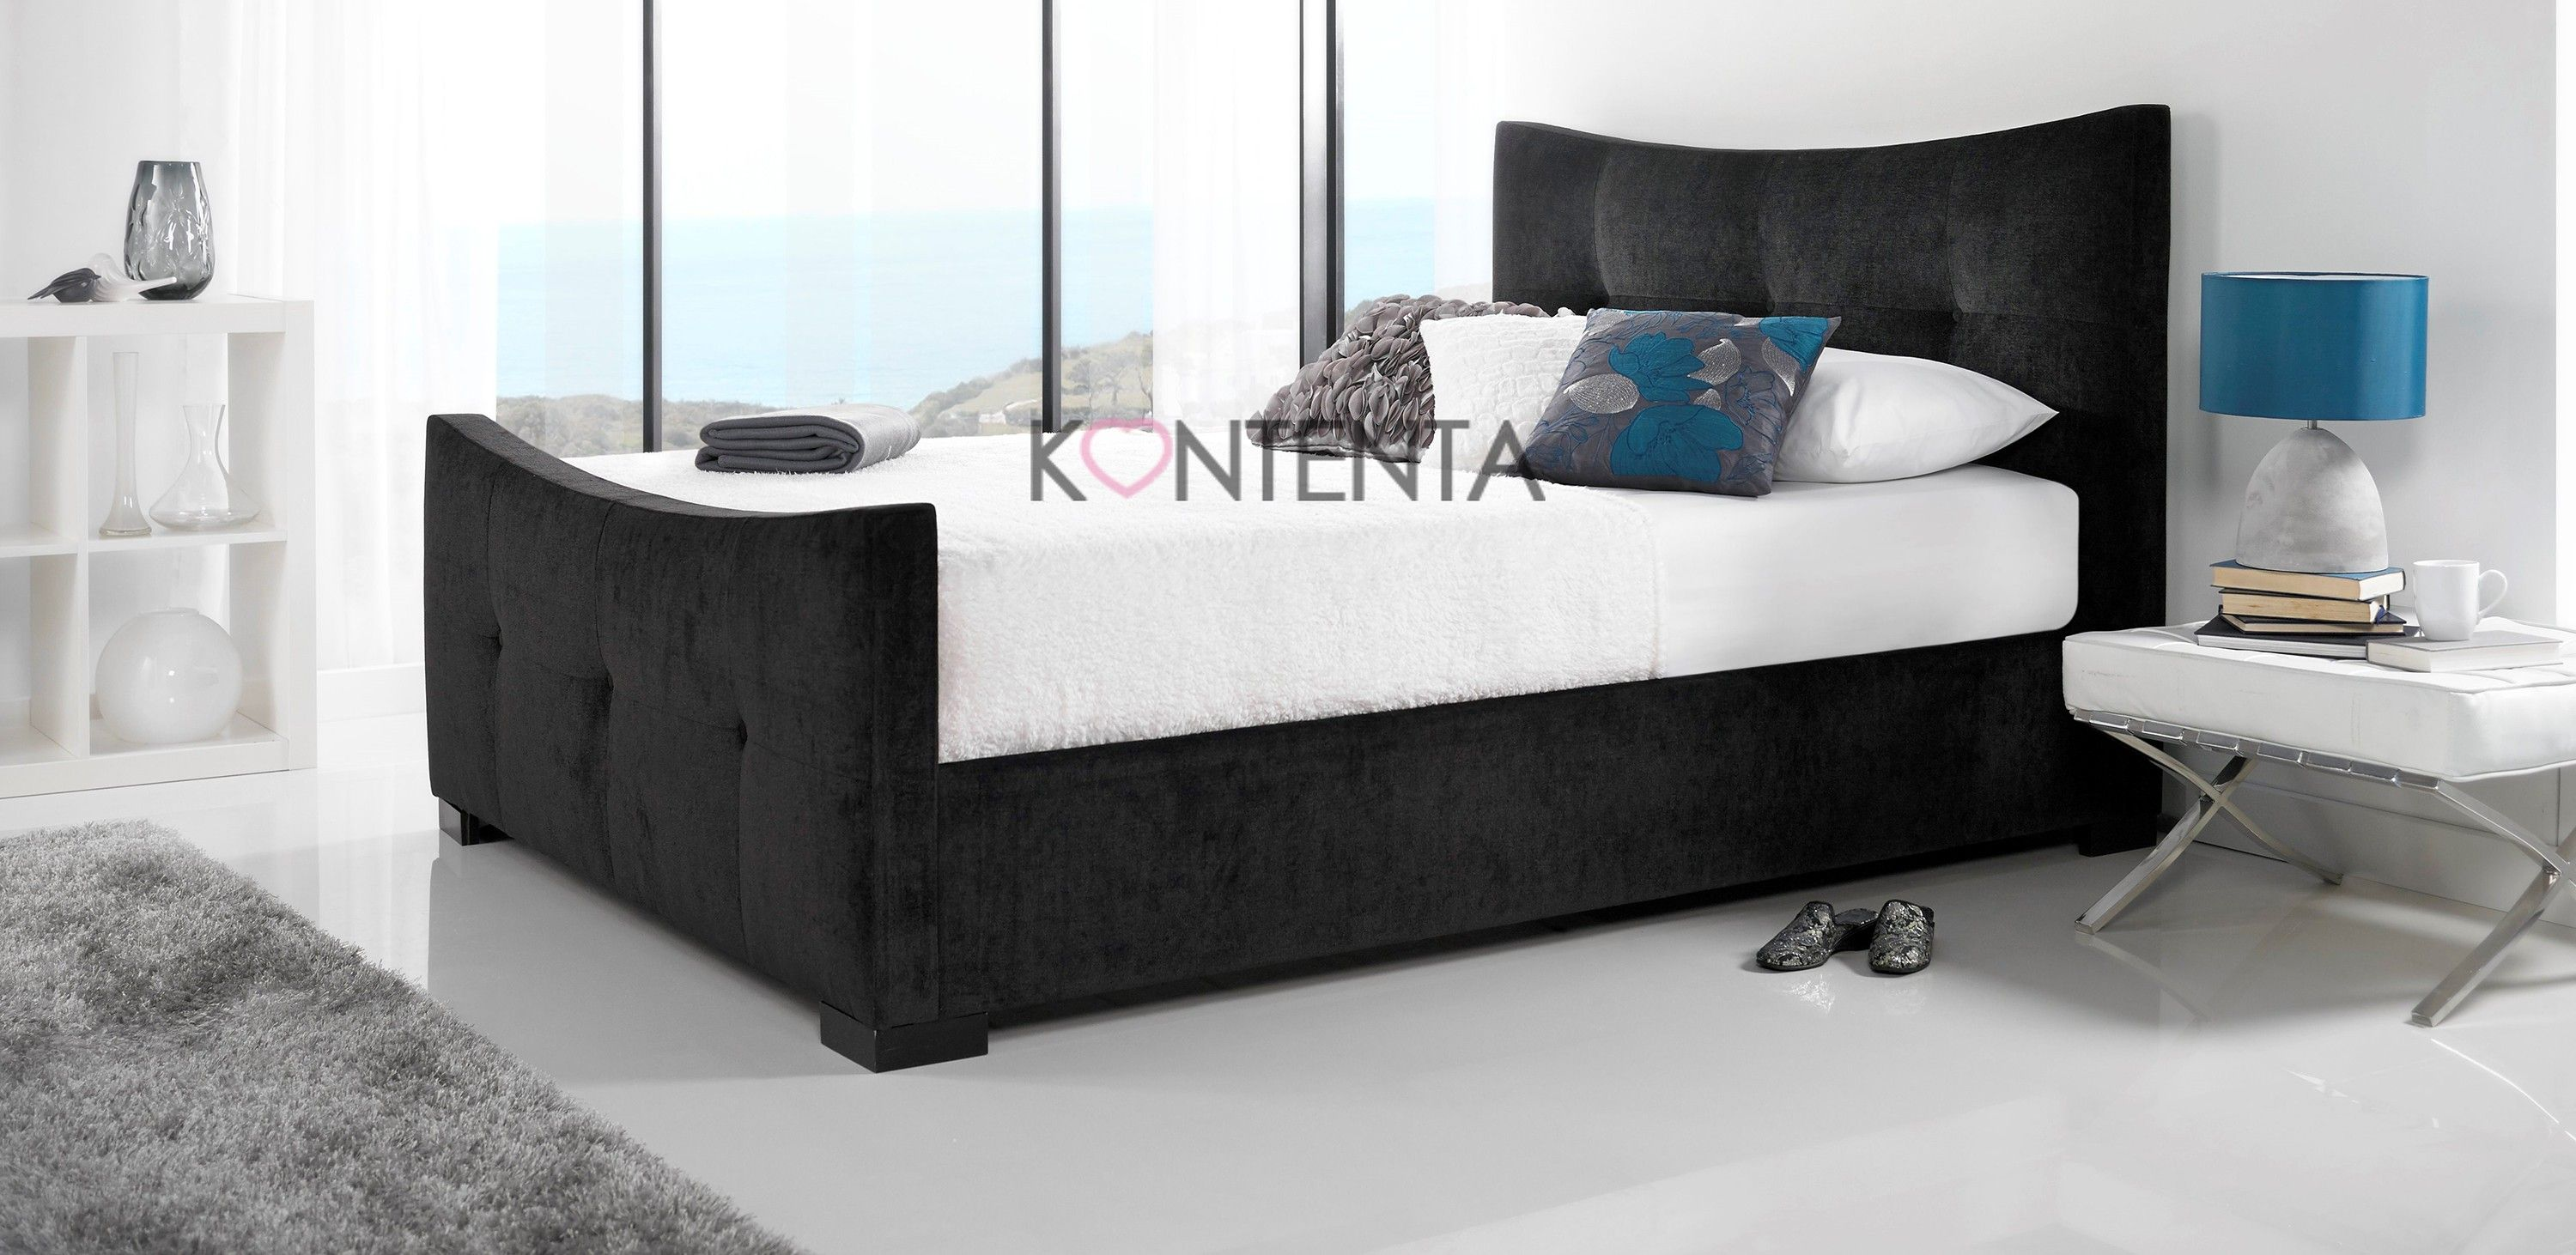 The kaydian seaton bed frame is upholstered in a stylish black fabric made from 85 polyester 15 viscose fabric with a gentle curve design for the head